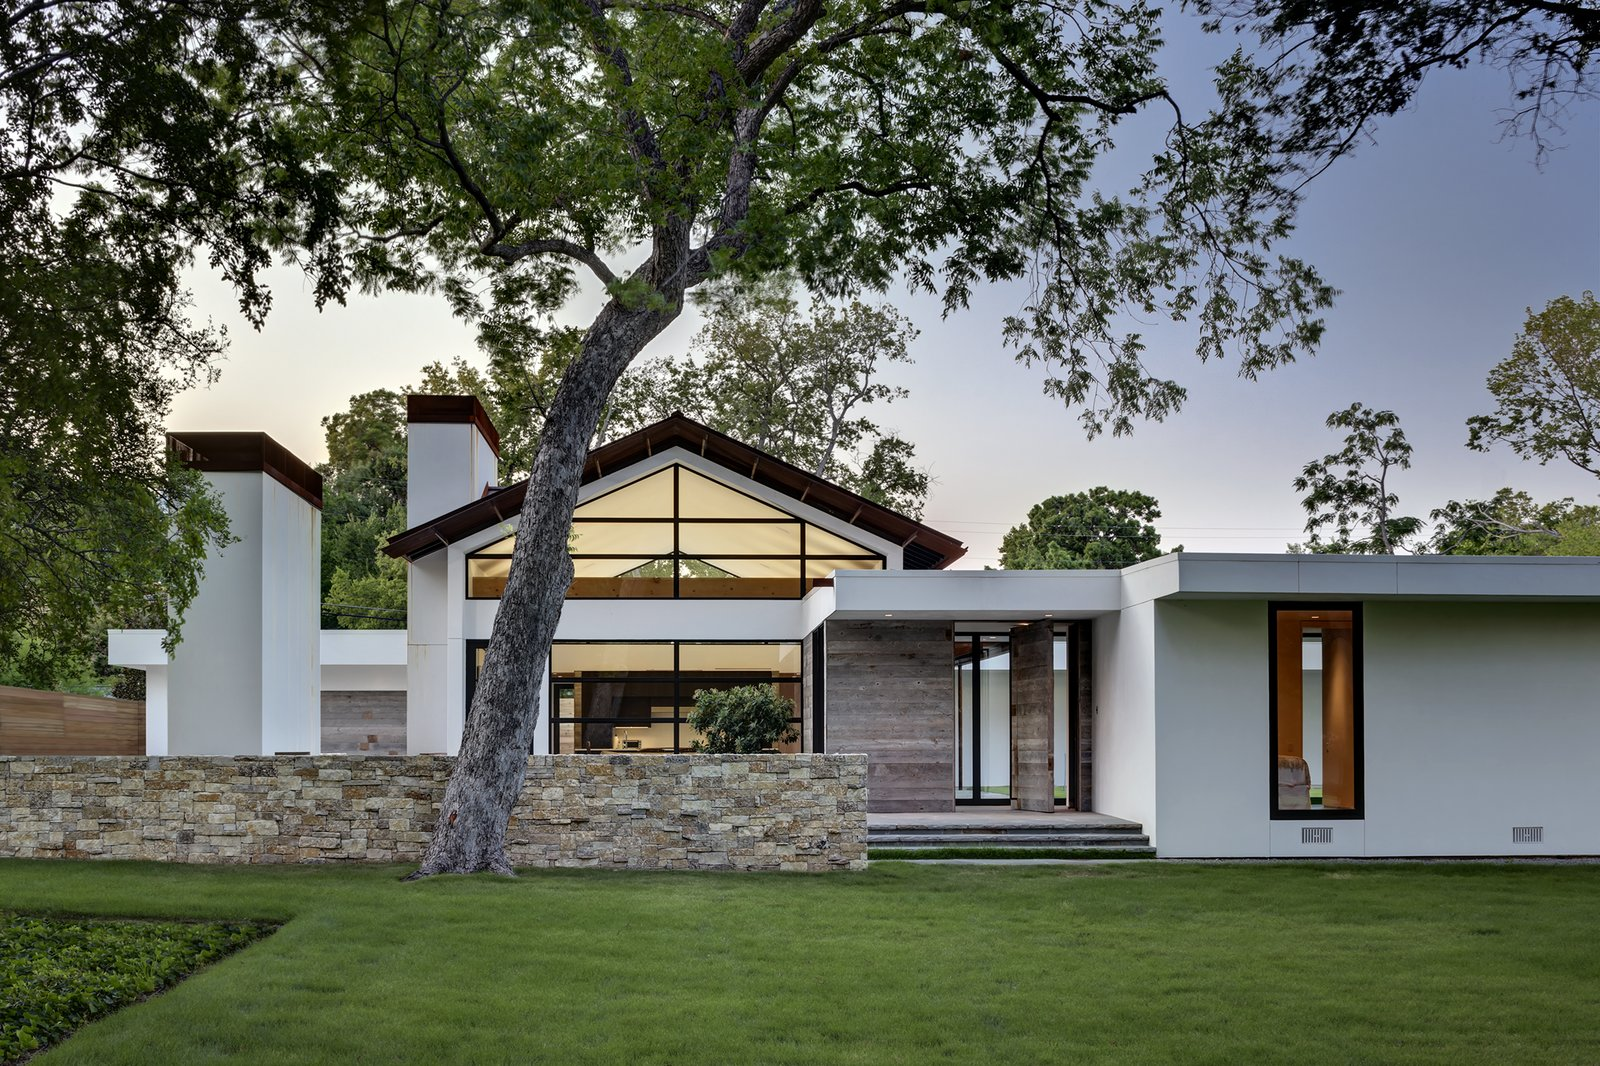 """The home's outer walls were dry-stacked with limestone cut from a Texas Granbury quarry, and its gabled roof was made with weathered Cor-Ten steel that emits the same maverick spirit as a Richard Serra sculpture. The freestanding fireplace just inside the courtyard was even salvaged from the old house's living room. Clean stucco walls contrast with the grass and trees, while reclaimed wood siding complement them.  Search """"cor ten steel"""" from Preston Hollow"""